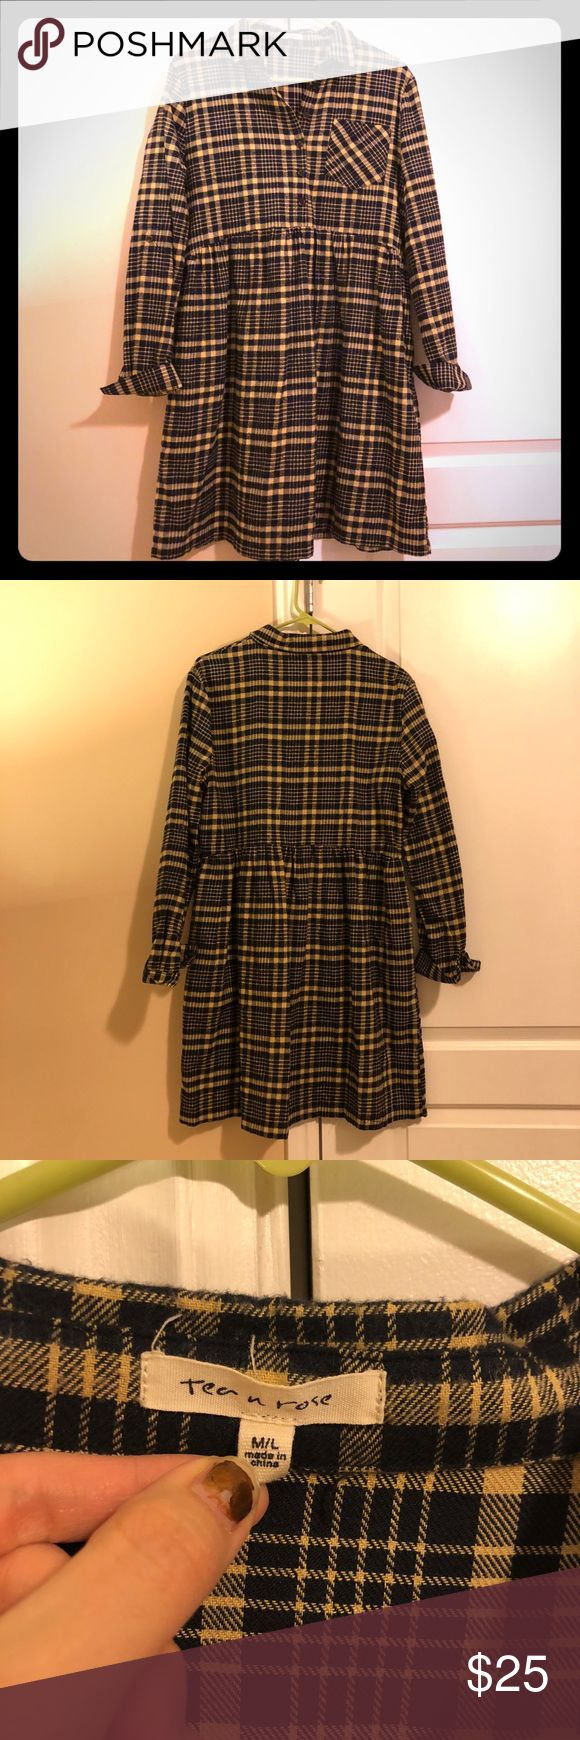 TEA n ROSE • Flannel Shirt Dress Darling and cozy flannel shirt dress, purchased from Shop Ruche. Size M/L. NWOT. Tan and an almost black navy... with pockets!!! Dresses